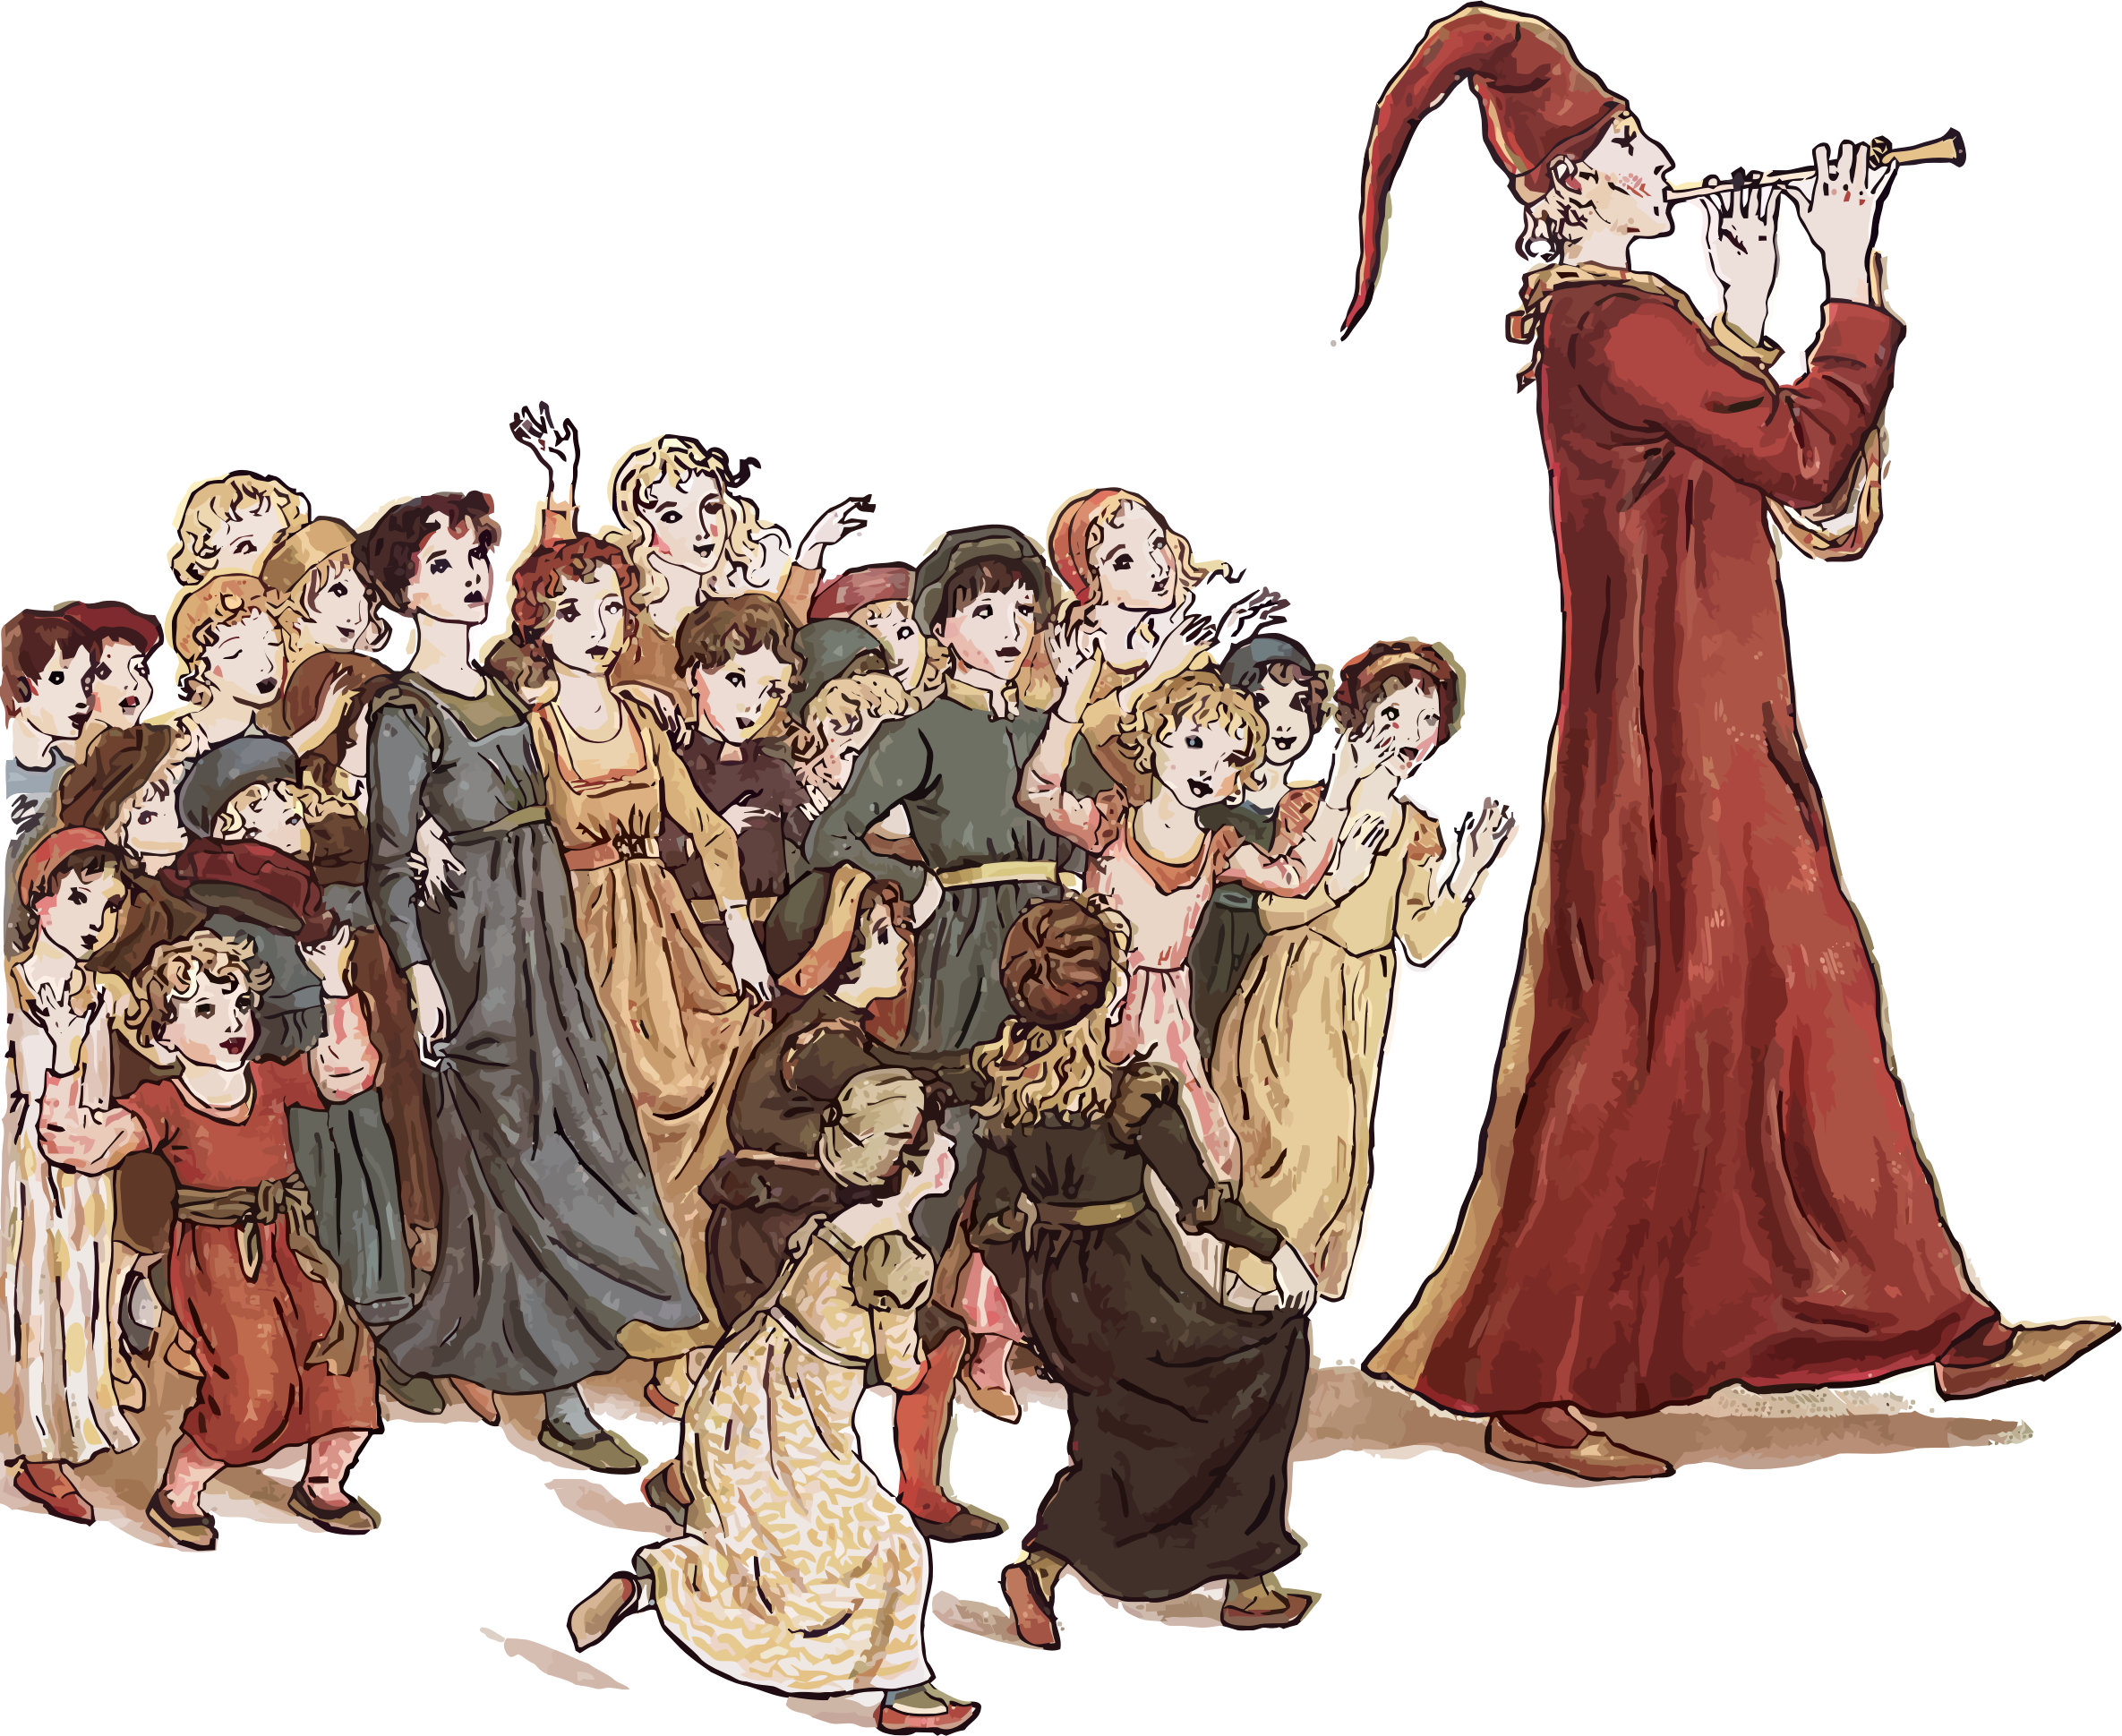 Fluted  clipart pied piper Piper Piper Pied Of Pied